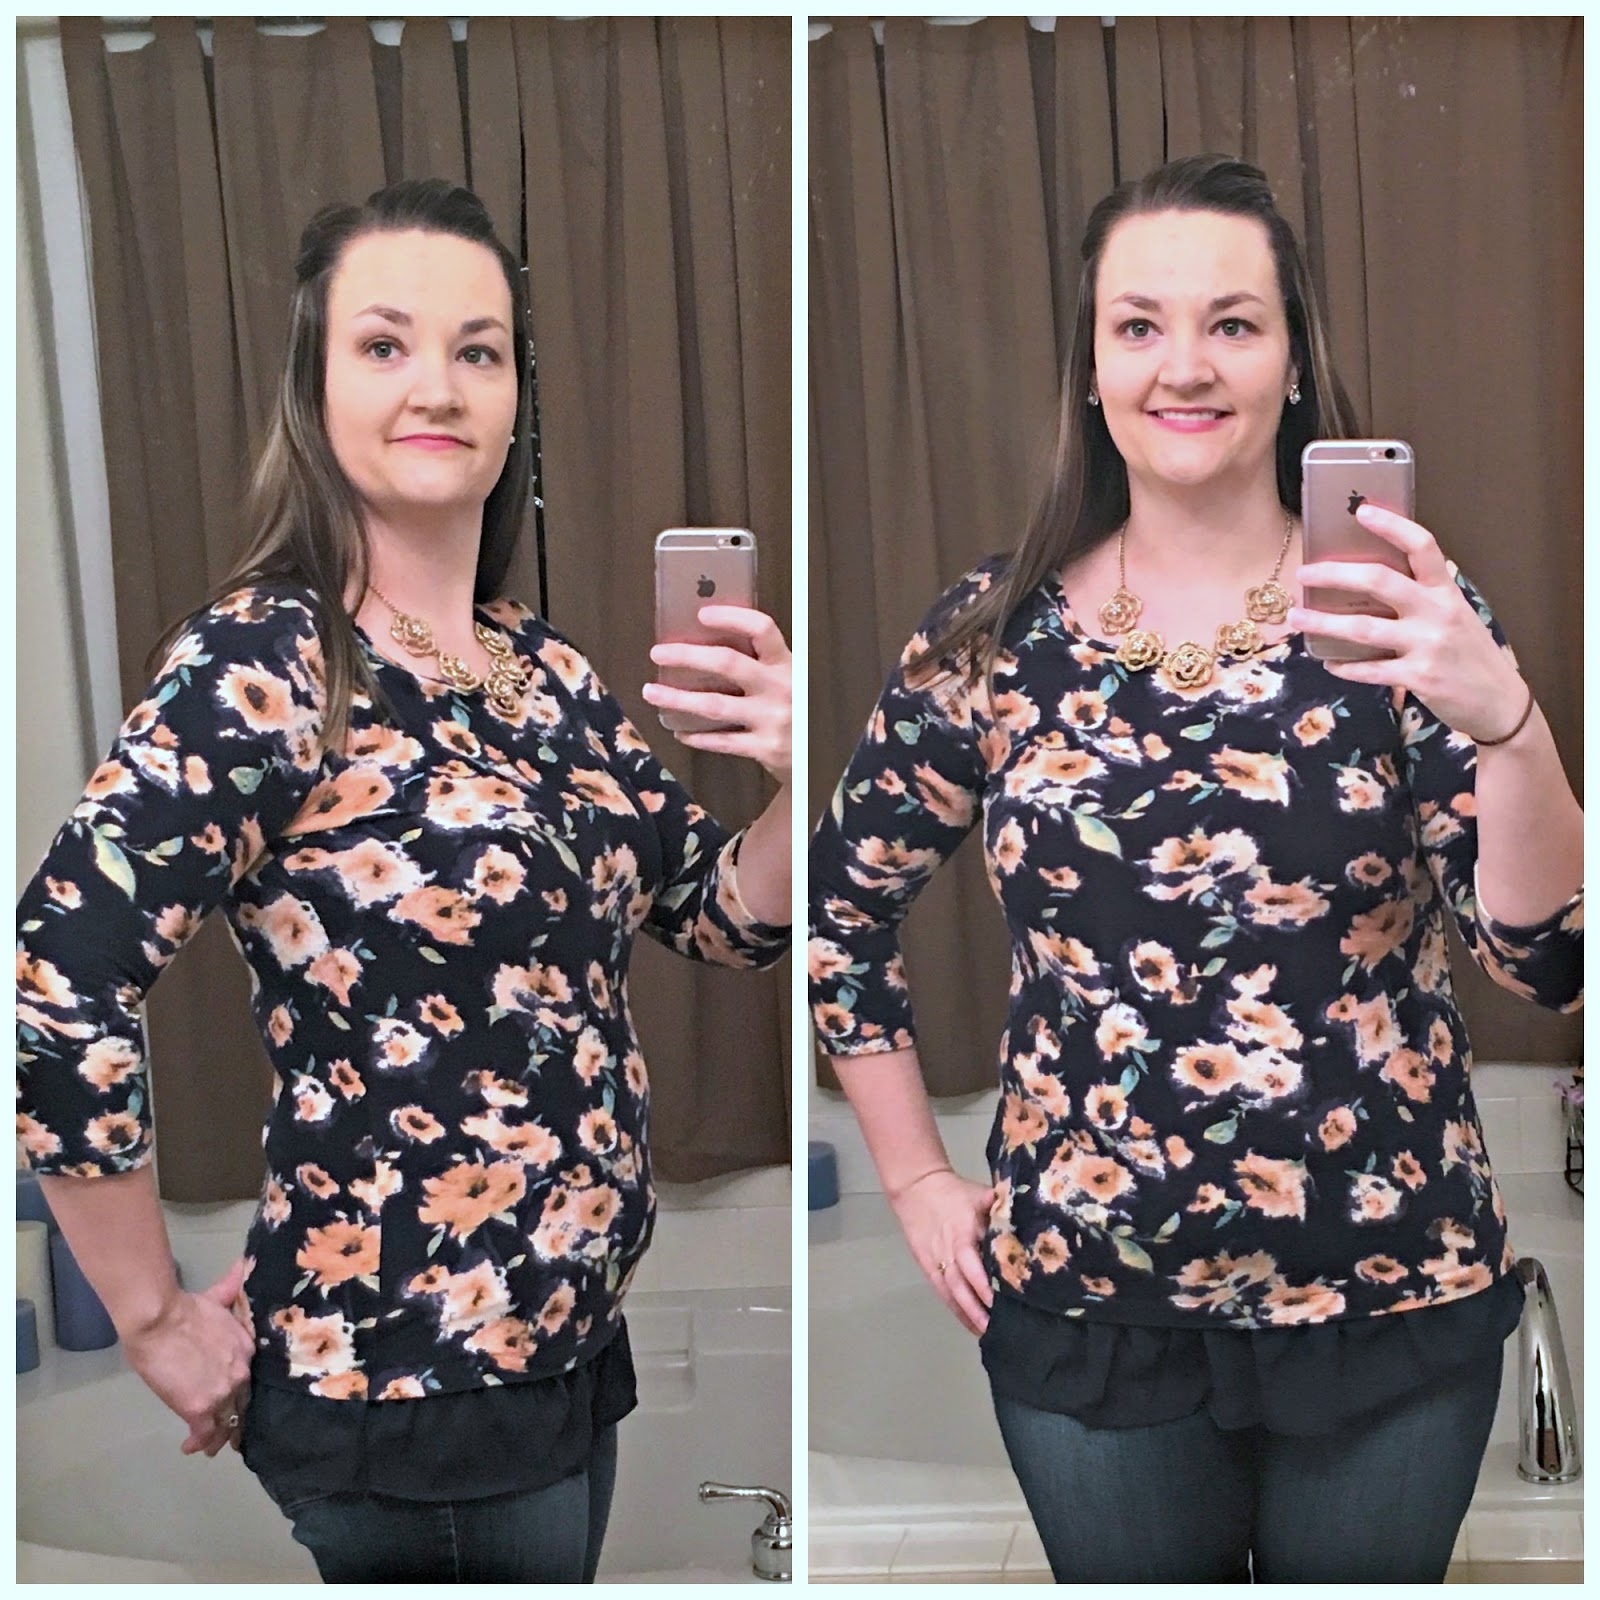 will i lose weight after gallbladder surgery